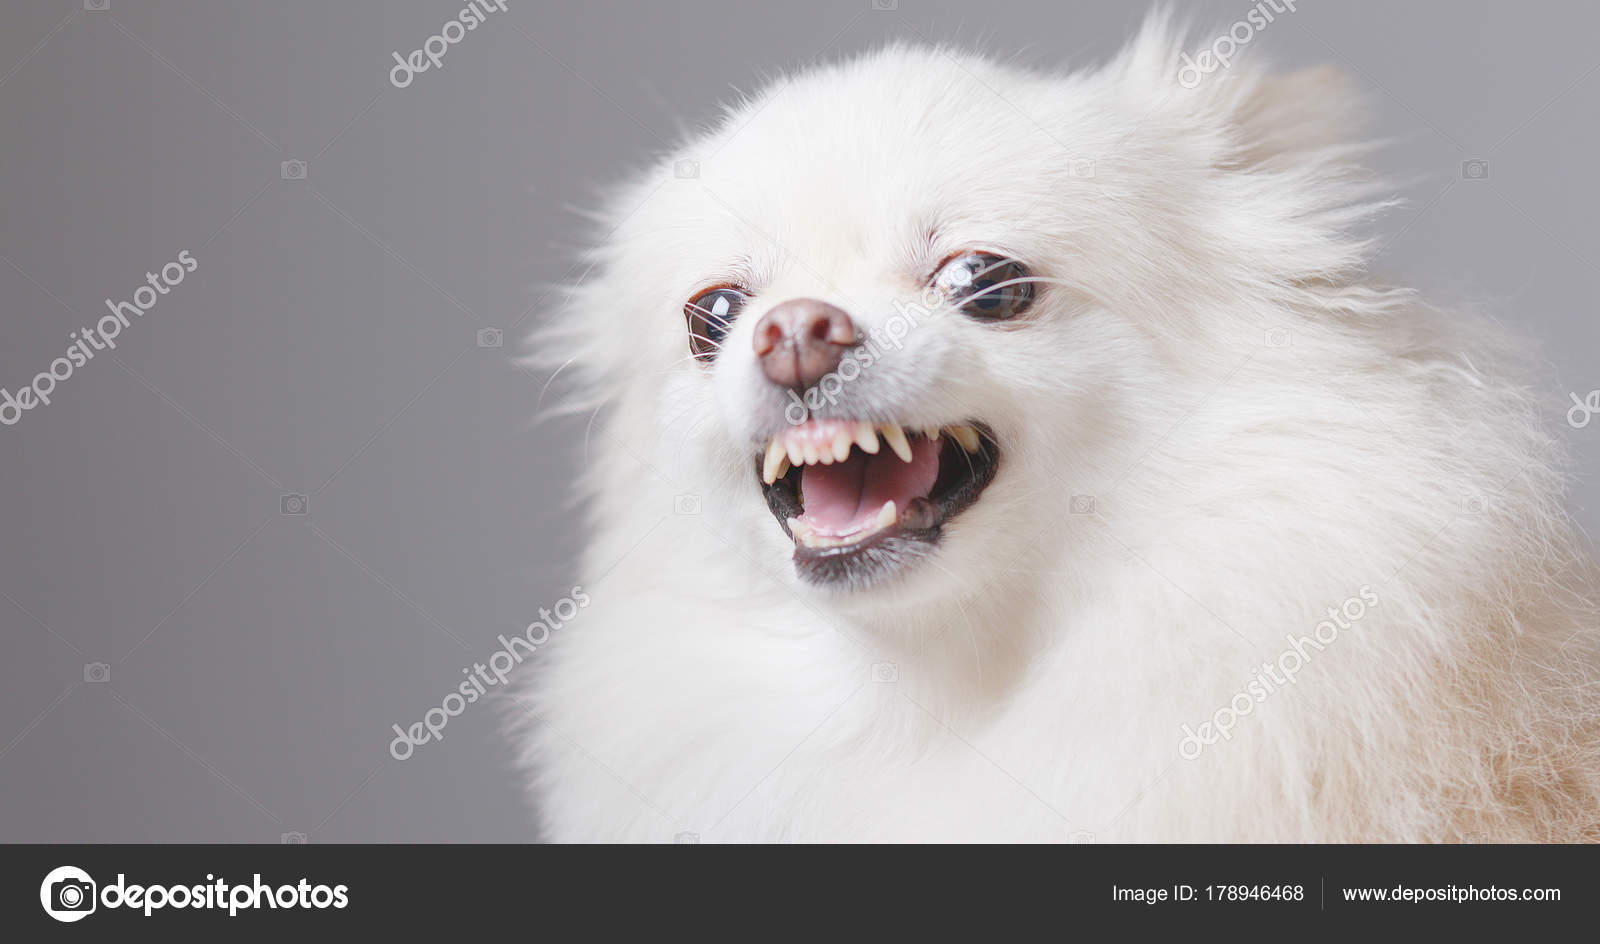 Angry pomeranian dog close stock photo leungchopan 178946468 angry pomeranian dog close up photo by leungchopan thecheapjerseys Image collections